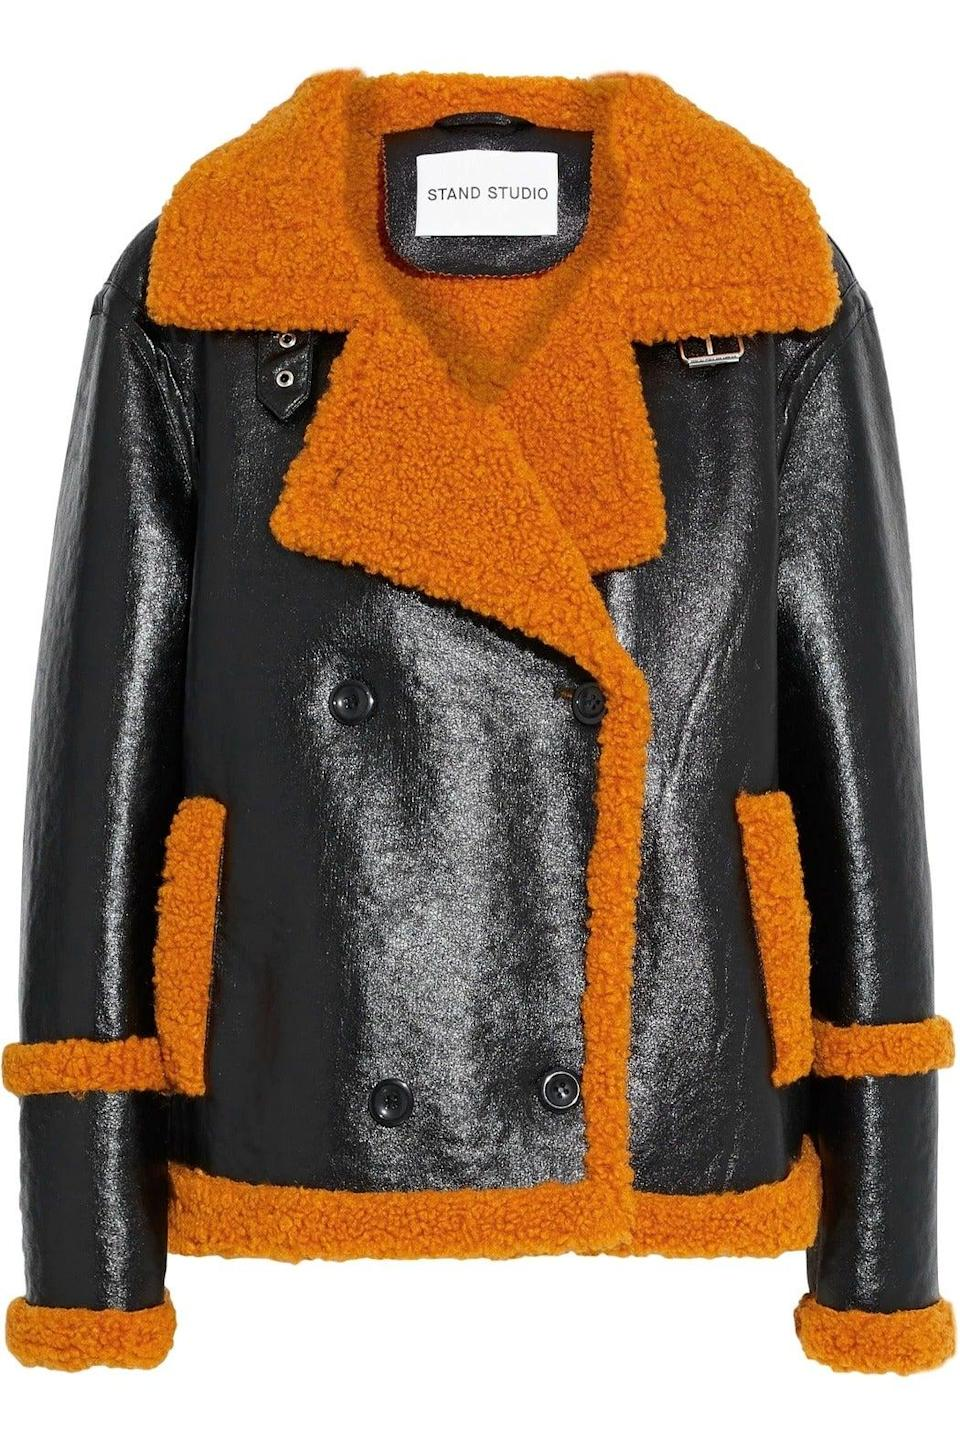 """<br><br><strong>Stand Studio</strong> Glossed Faux Shearling Jacket, $, available at <a href=""""https://www.theoutnet.com/en-gb/shop/product/stand-studio/jackets/casual-jackets/lilli-double-breasted-glossed-faux-shearling-jacket/19971654707623875?tp=175320&cm_mmc=PartnerizeUK&EU&utm_campaign=laurenlyst&utm_medium=affiliation&utm_source=PartnerizeUK&EU&laurenlyst=laurenlyst"""" rel=""""nofollow noopener"""" target=""""_blank"""" data-ylk=""""slk:The Outnet"""" class=""""link rapid-noclick-resp"""">The Outnet</a>"""